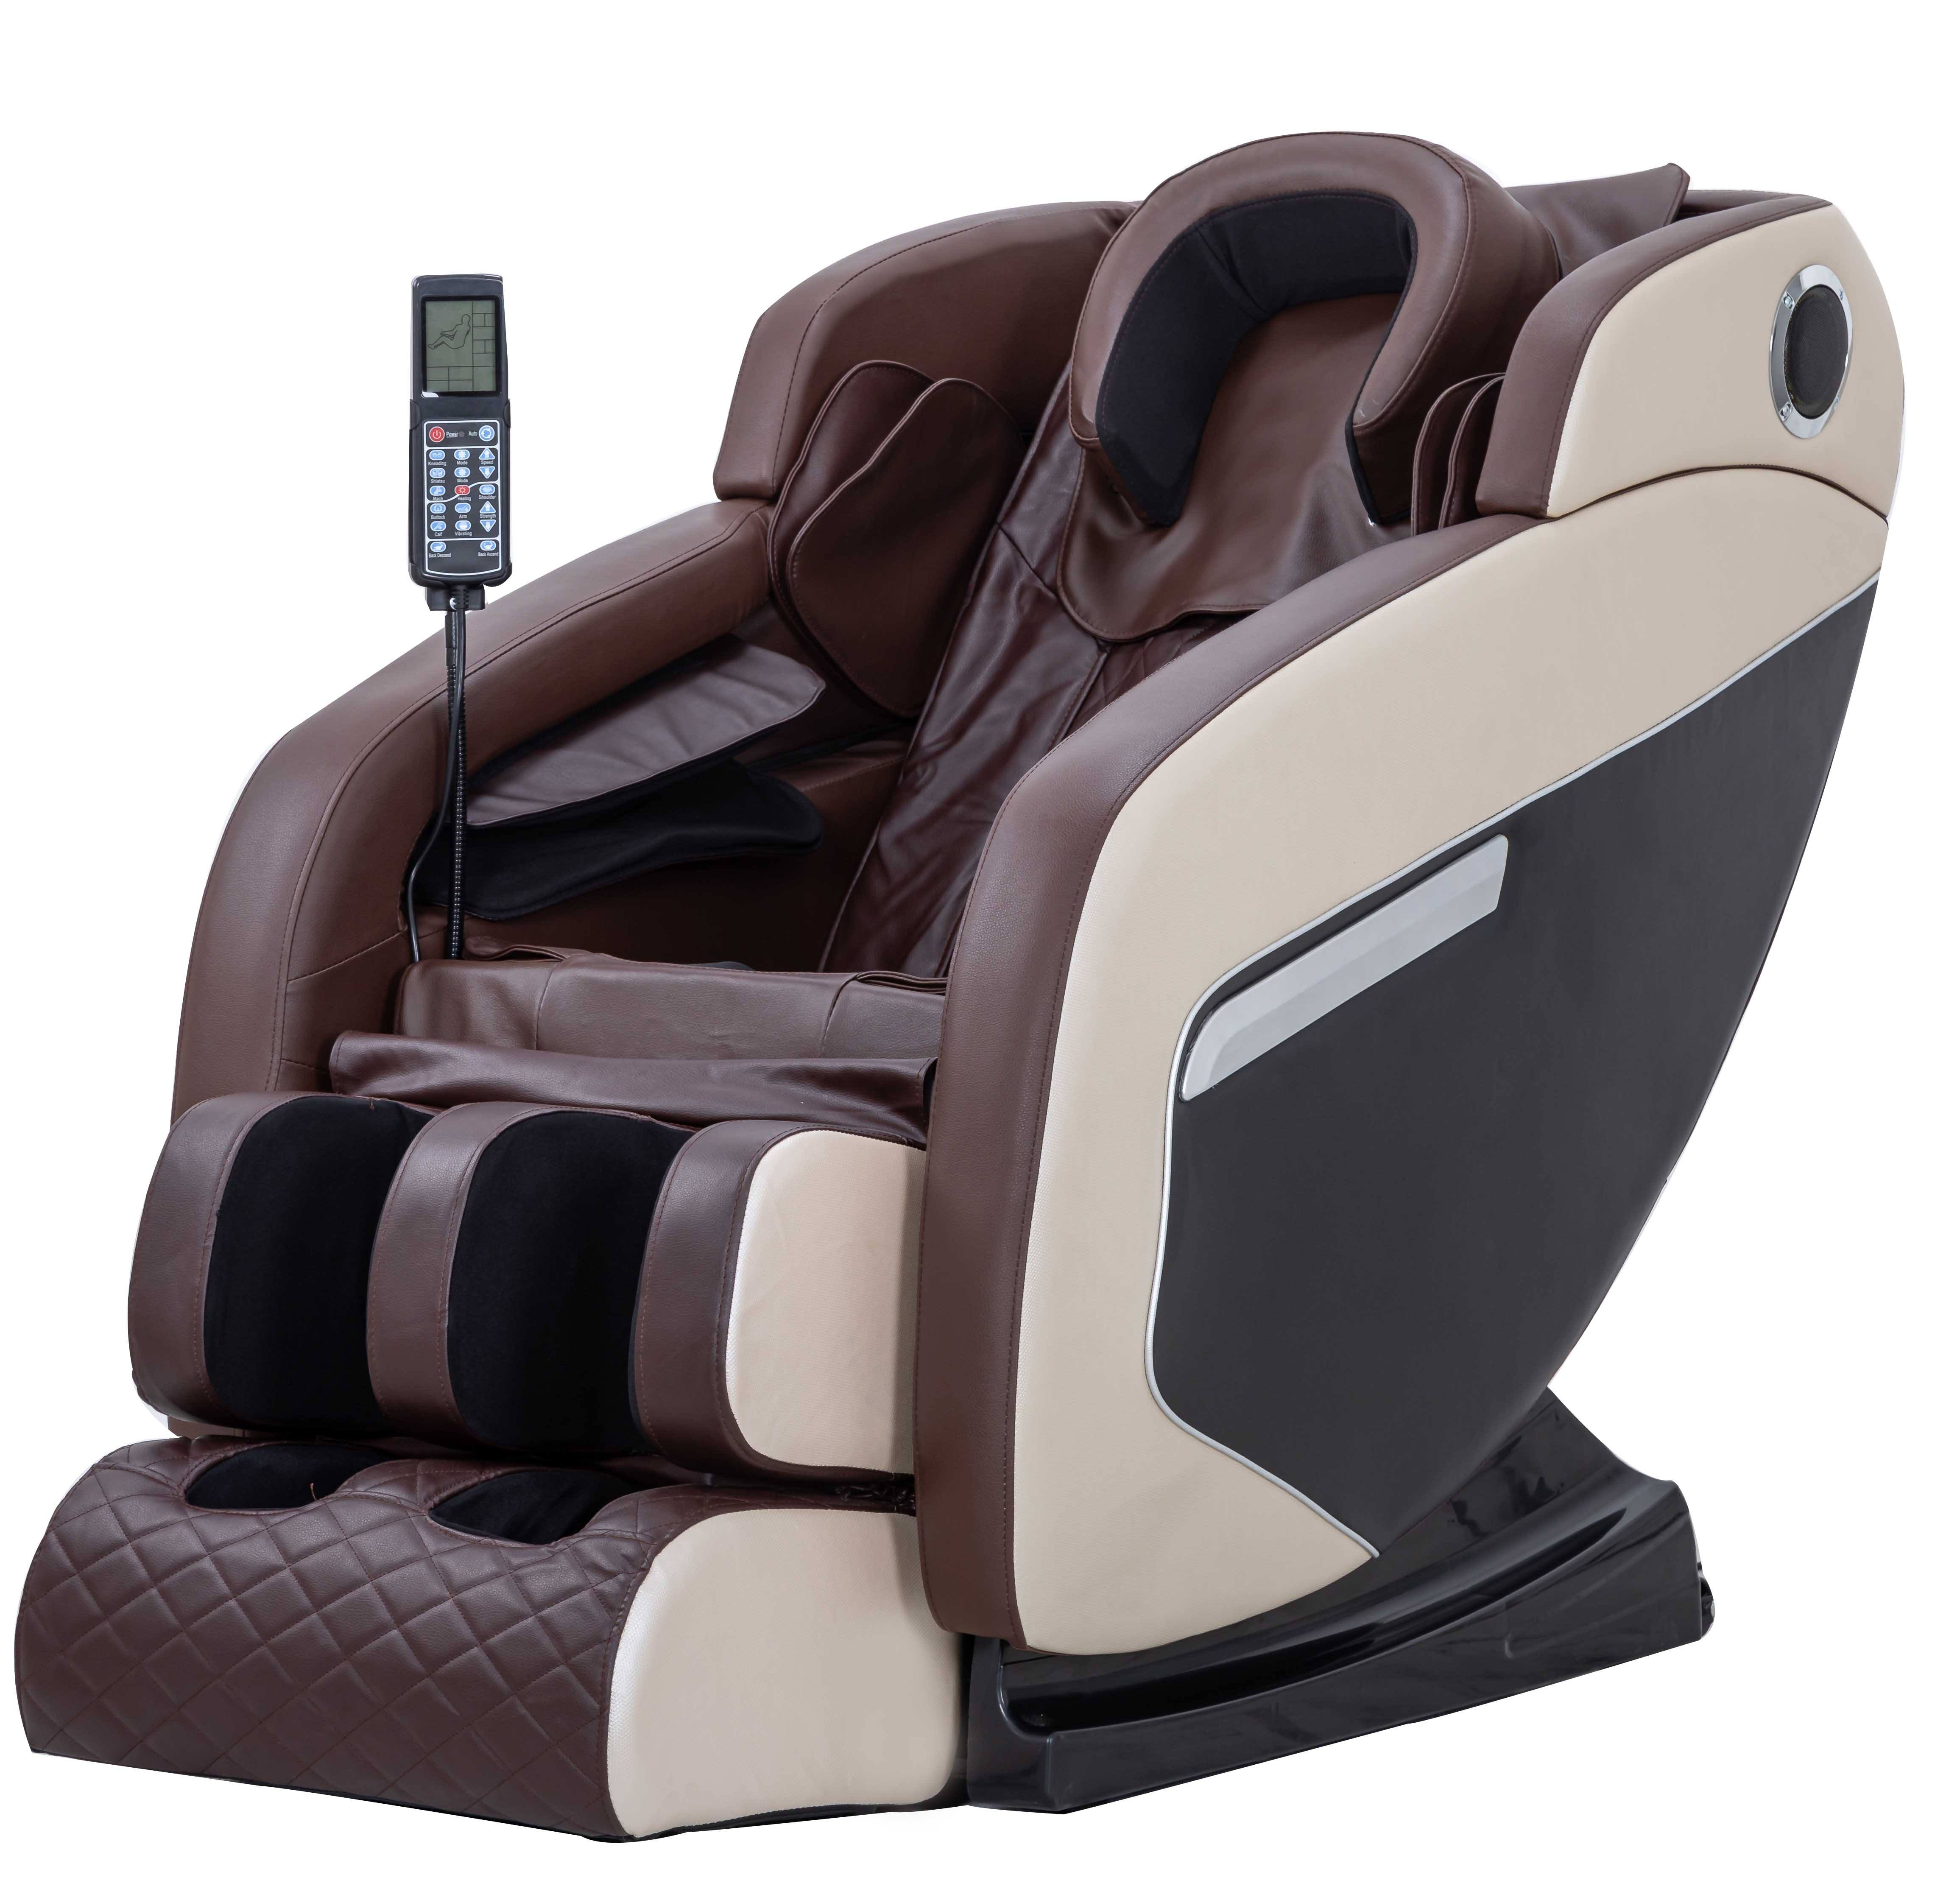 Massager Massager 4d 0 Gravity Full Body Electric Luxury Kneading Tapping Massage Chair Home